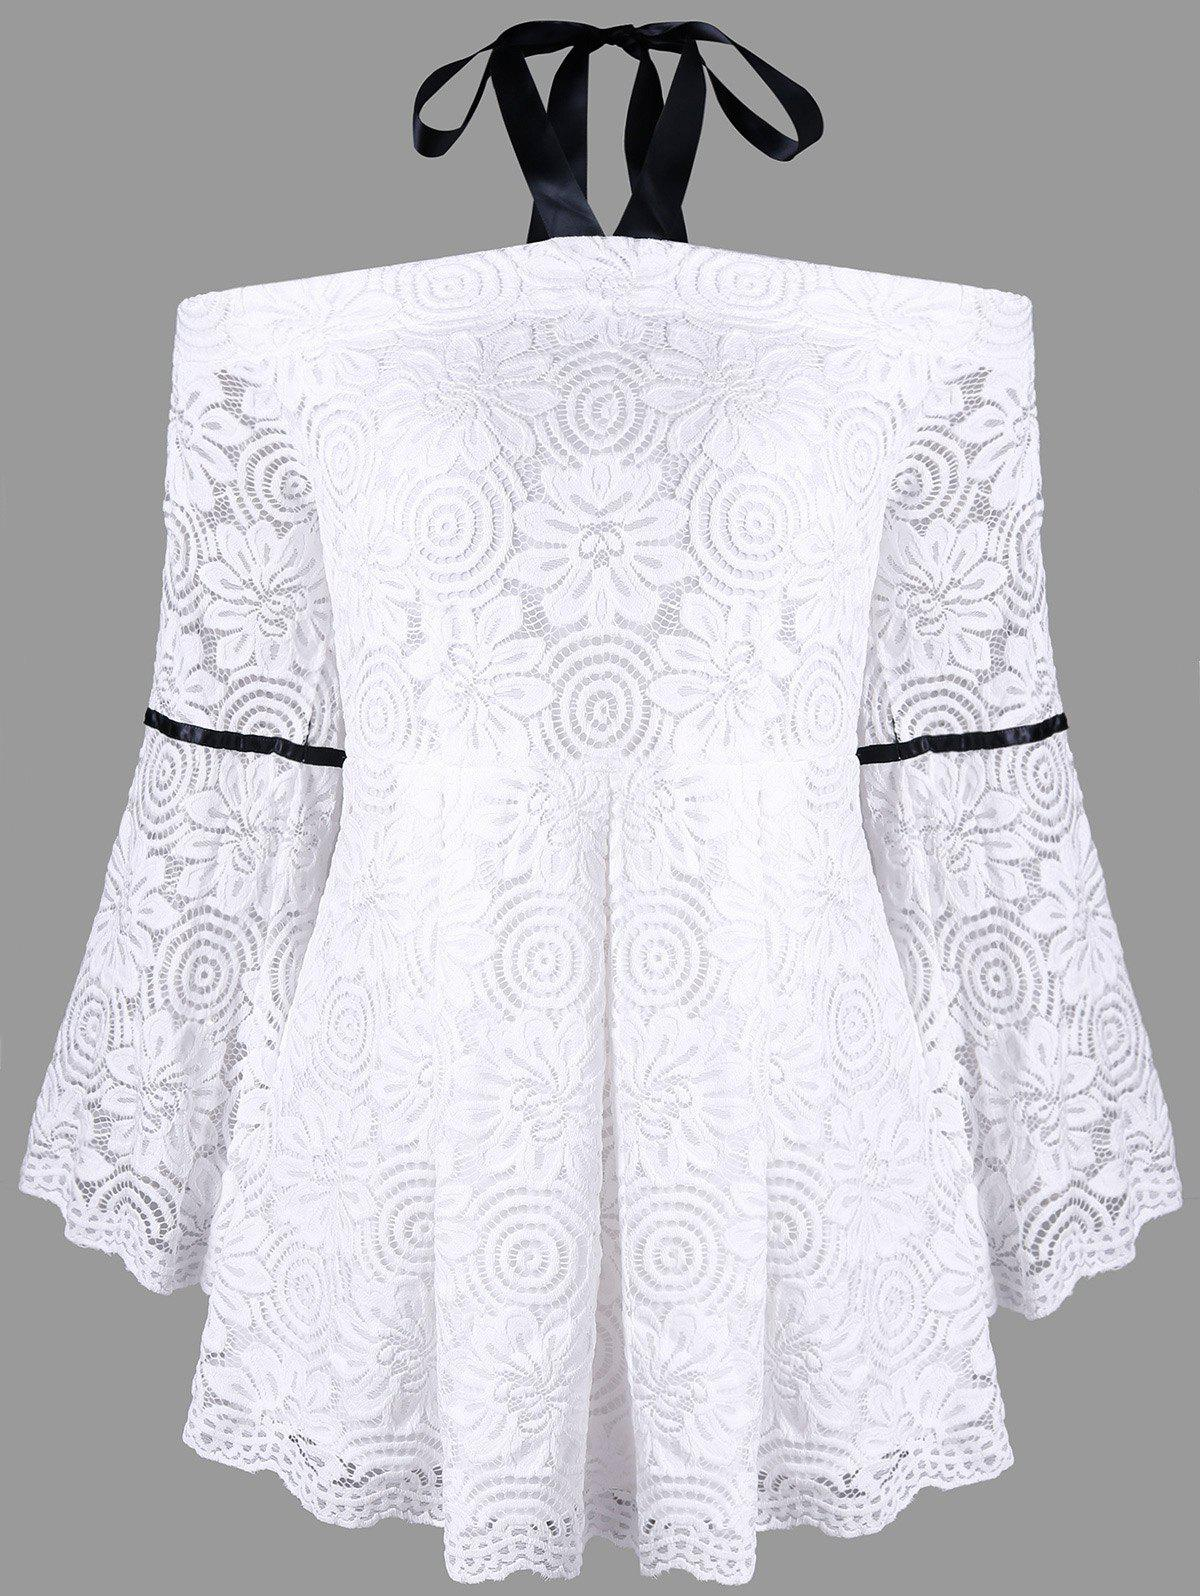 Plus Size Flare Sleeve Lace Halter Neck BlouseWOMEN<br><br>Size: 5XL; Color: WHITE; Material: Cotton Blends,Nylon; Shirt Length: Regular; Sleeve Length: Full; Collar: Halter Neck; Style: Fashion; Season: Fall,Spring; Sleeve Type: Flare Sleeve; Embellishment: Lace; Pattern Type: Floral; Weight: 0.3500kg; Package Contents: 1 x Blouse;